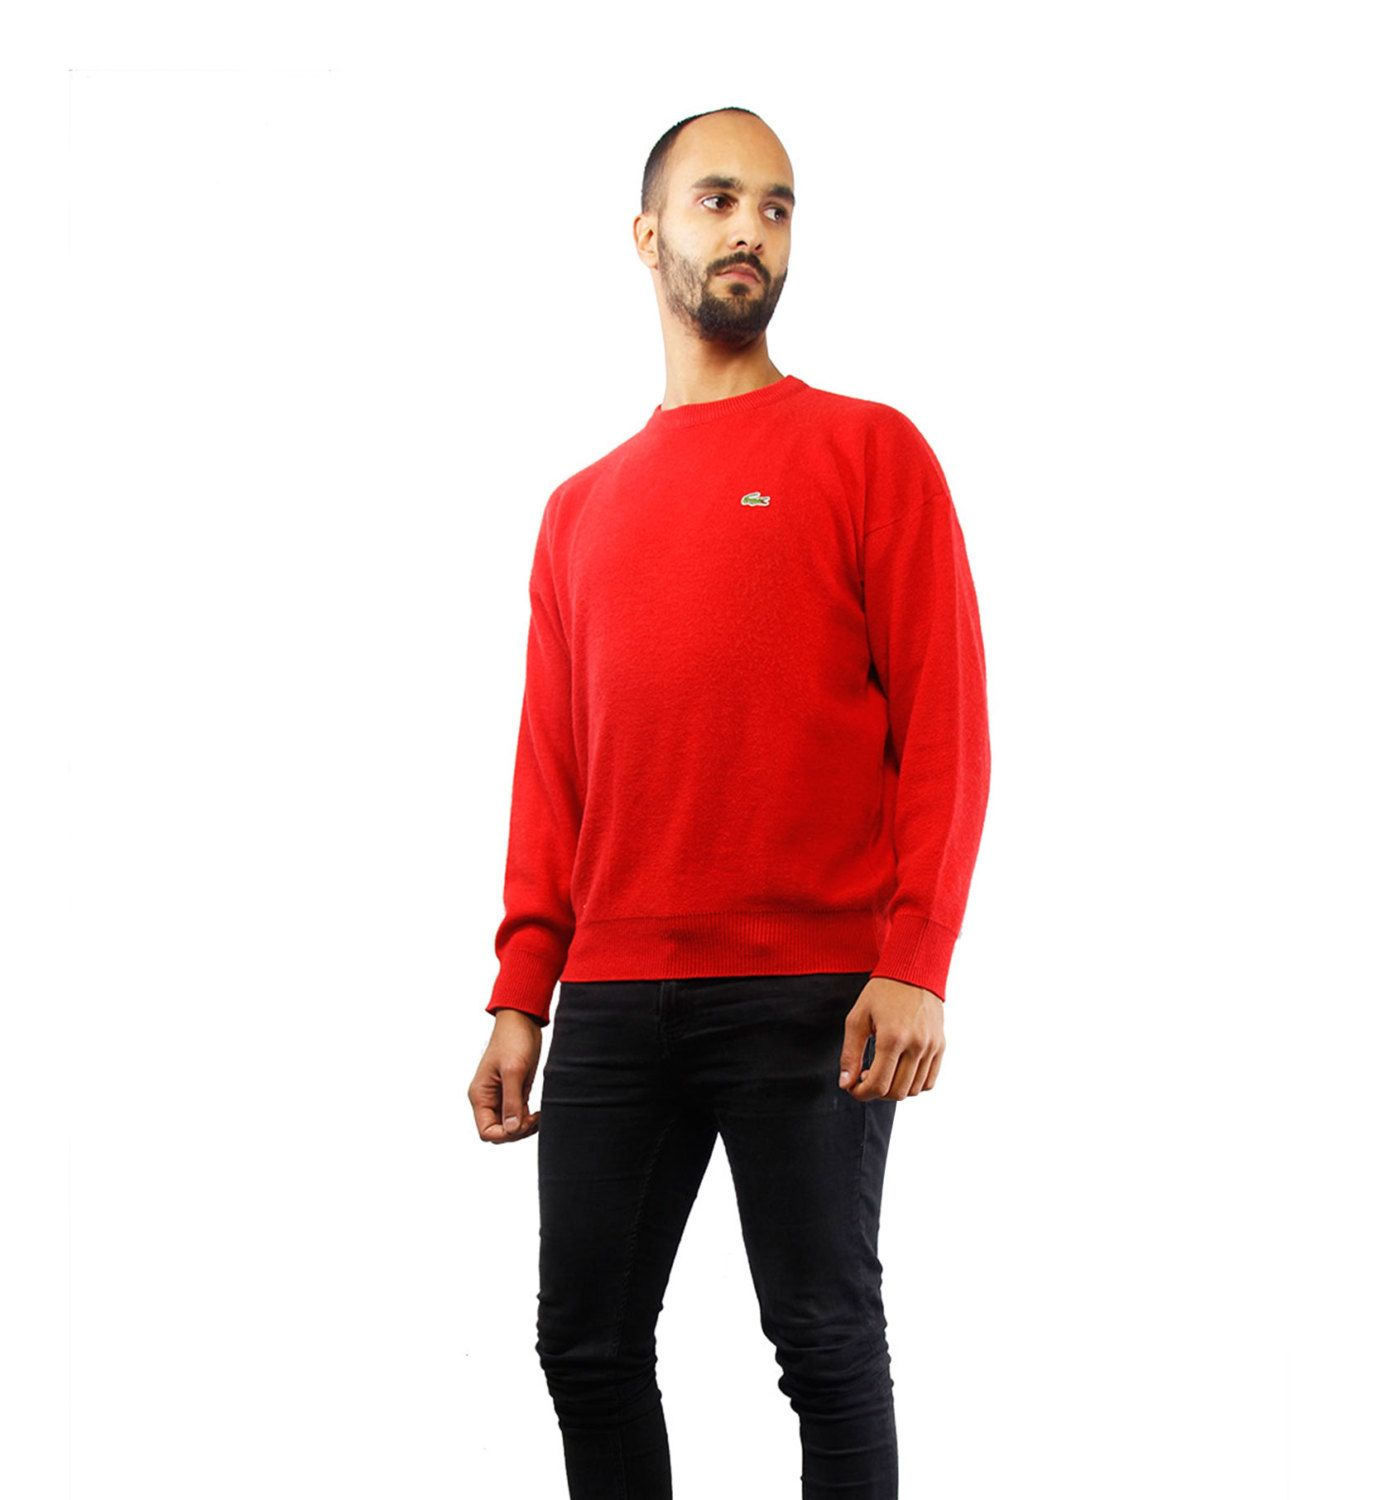 LACOSTE Pullover / Vintage Wool Pullover / Red / 90s Sweater ...